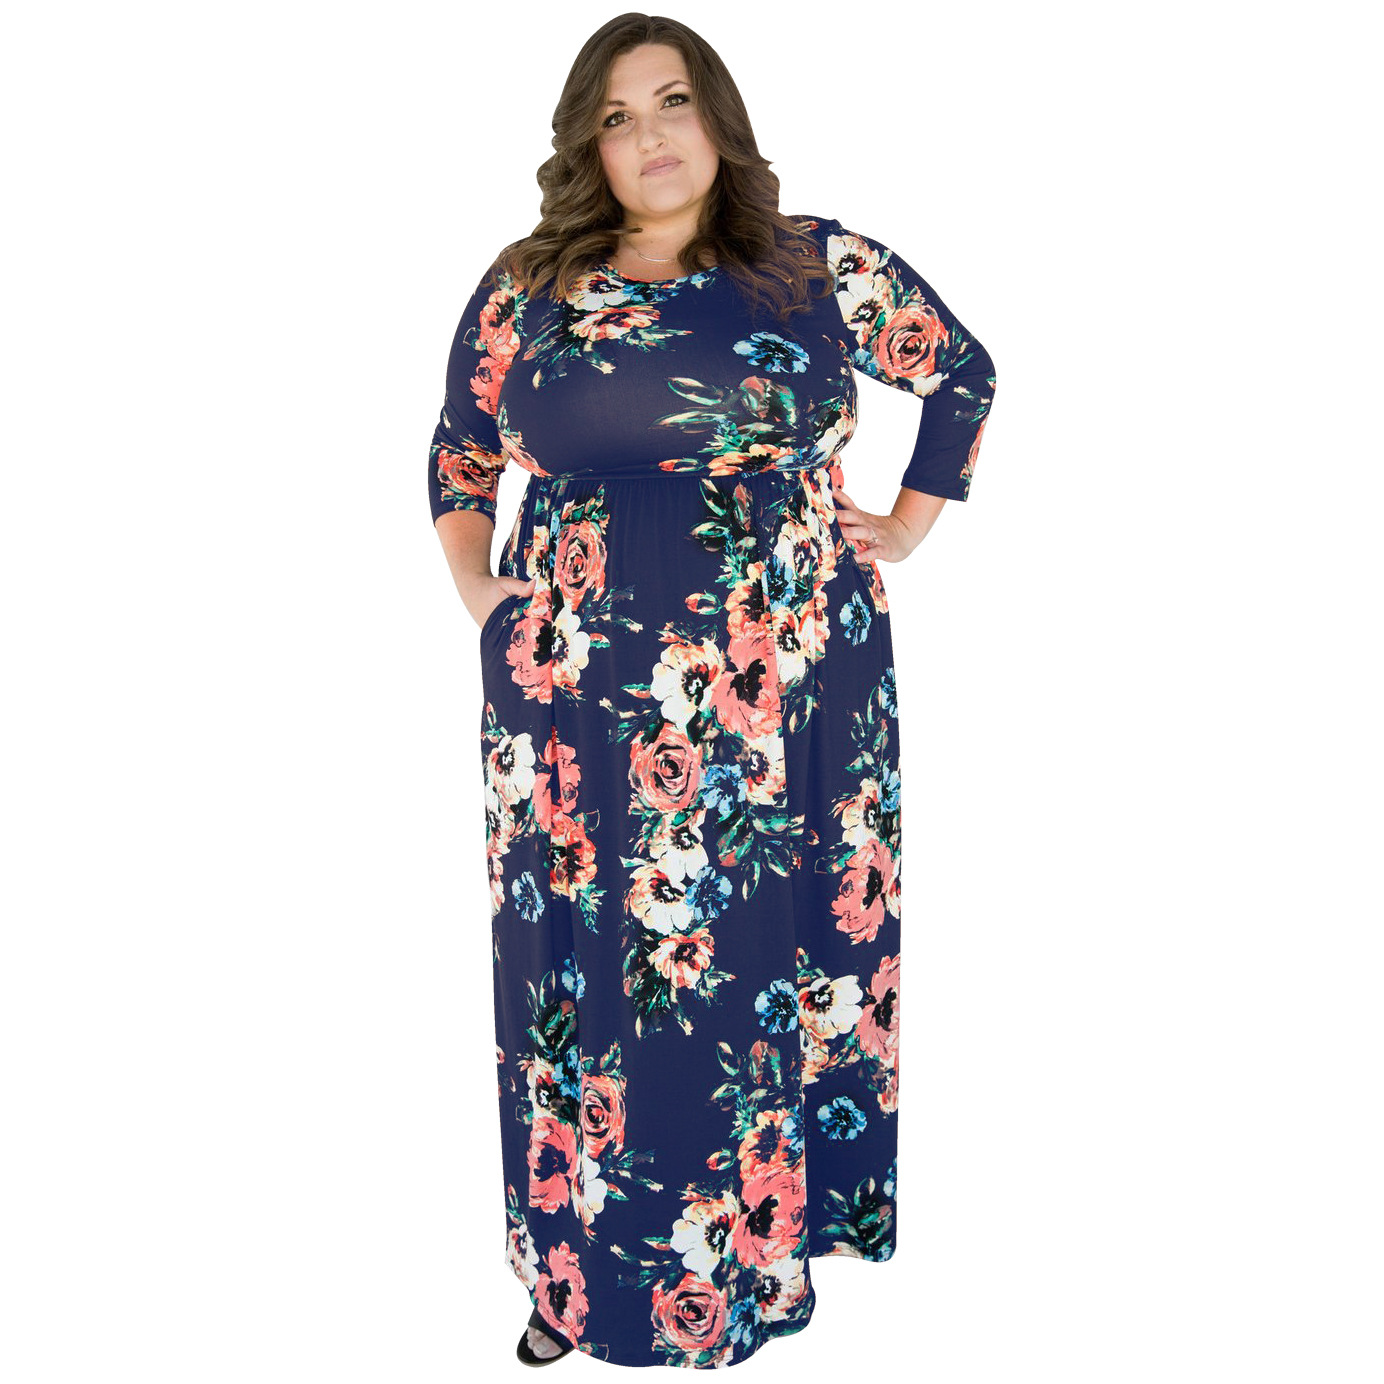 2017 Autumn And Winter Amazon Hot Selling Rose Digital Printing Large Size Long Sleeve Pocket Dress Big Momma-Currently Availabl